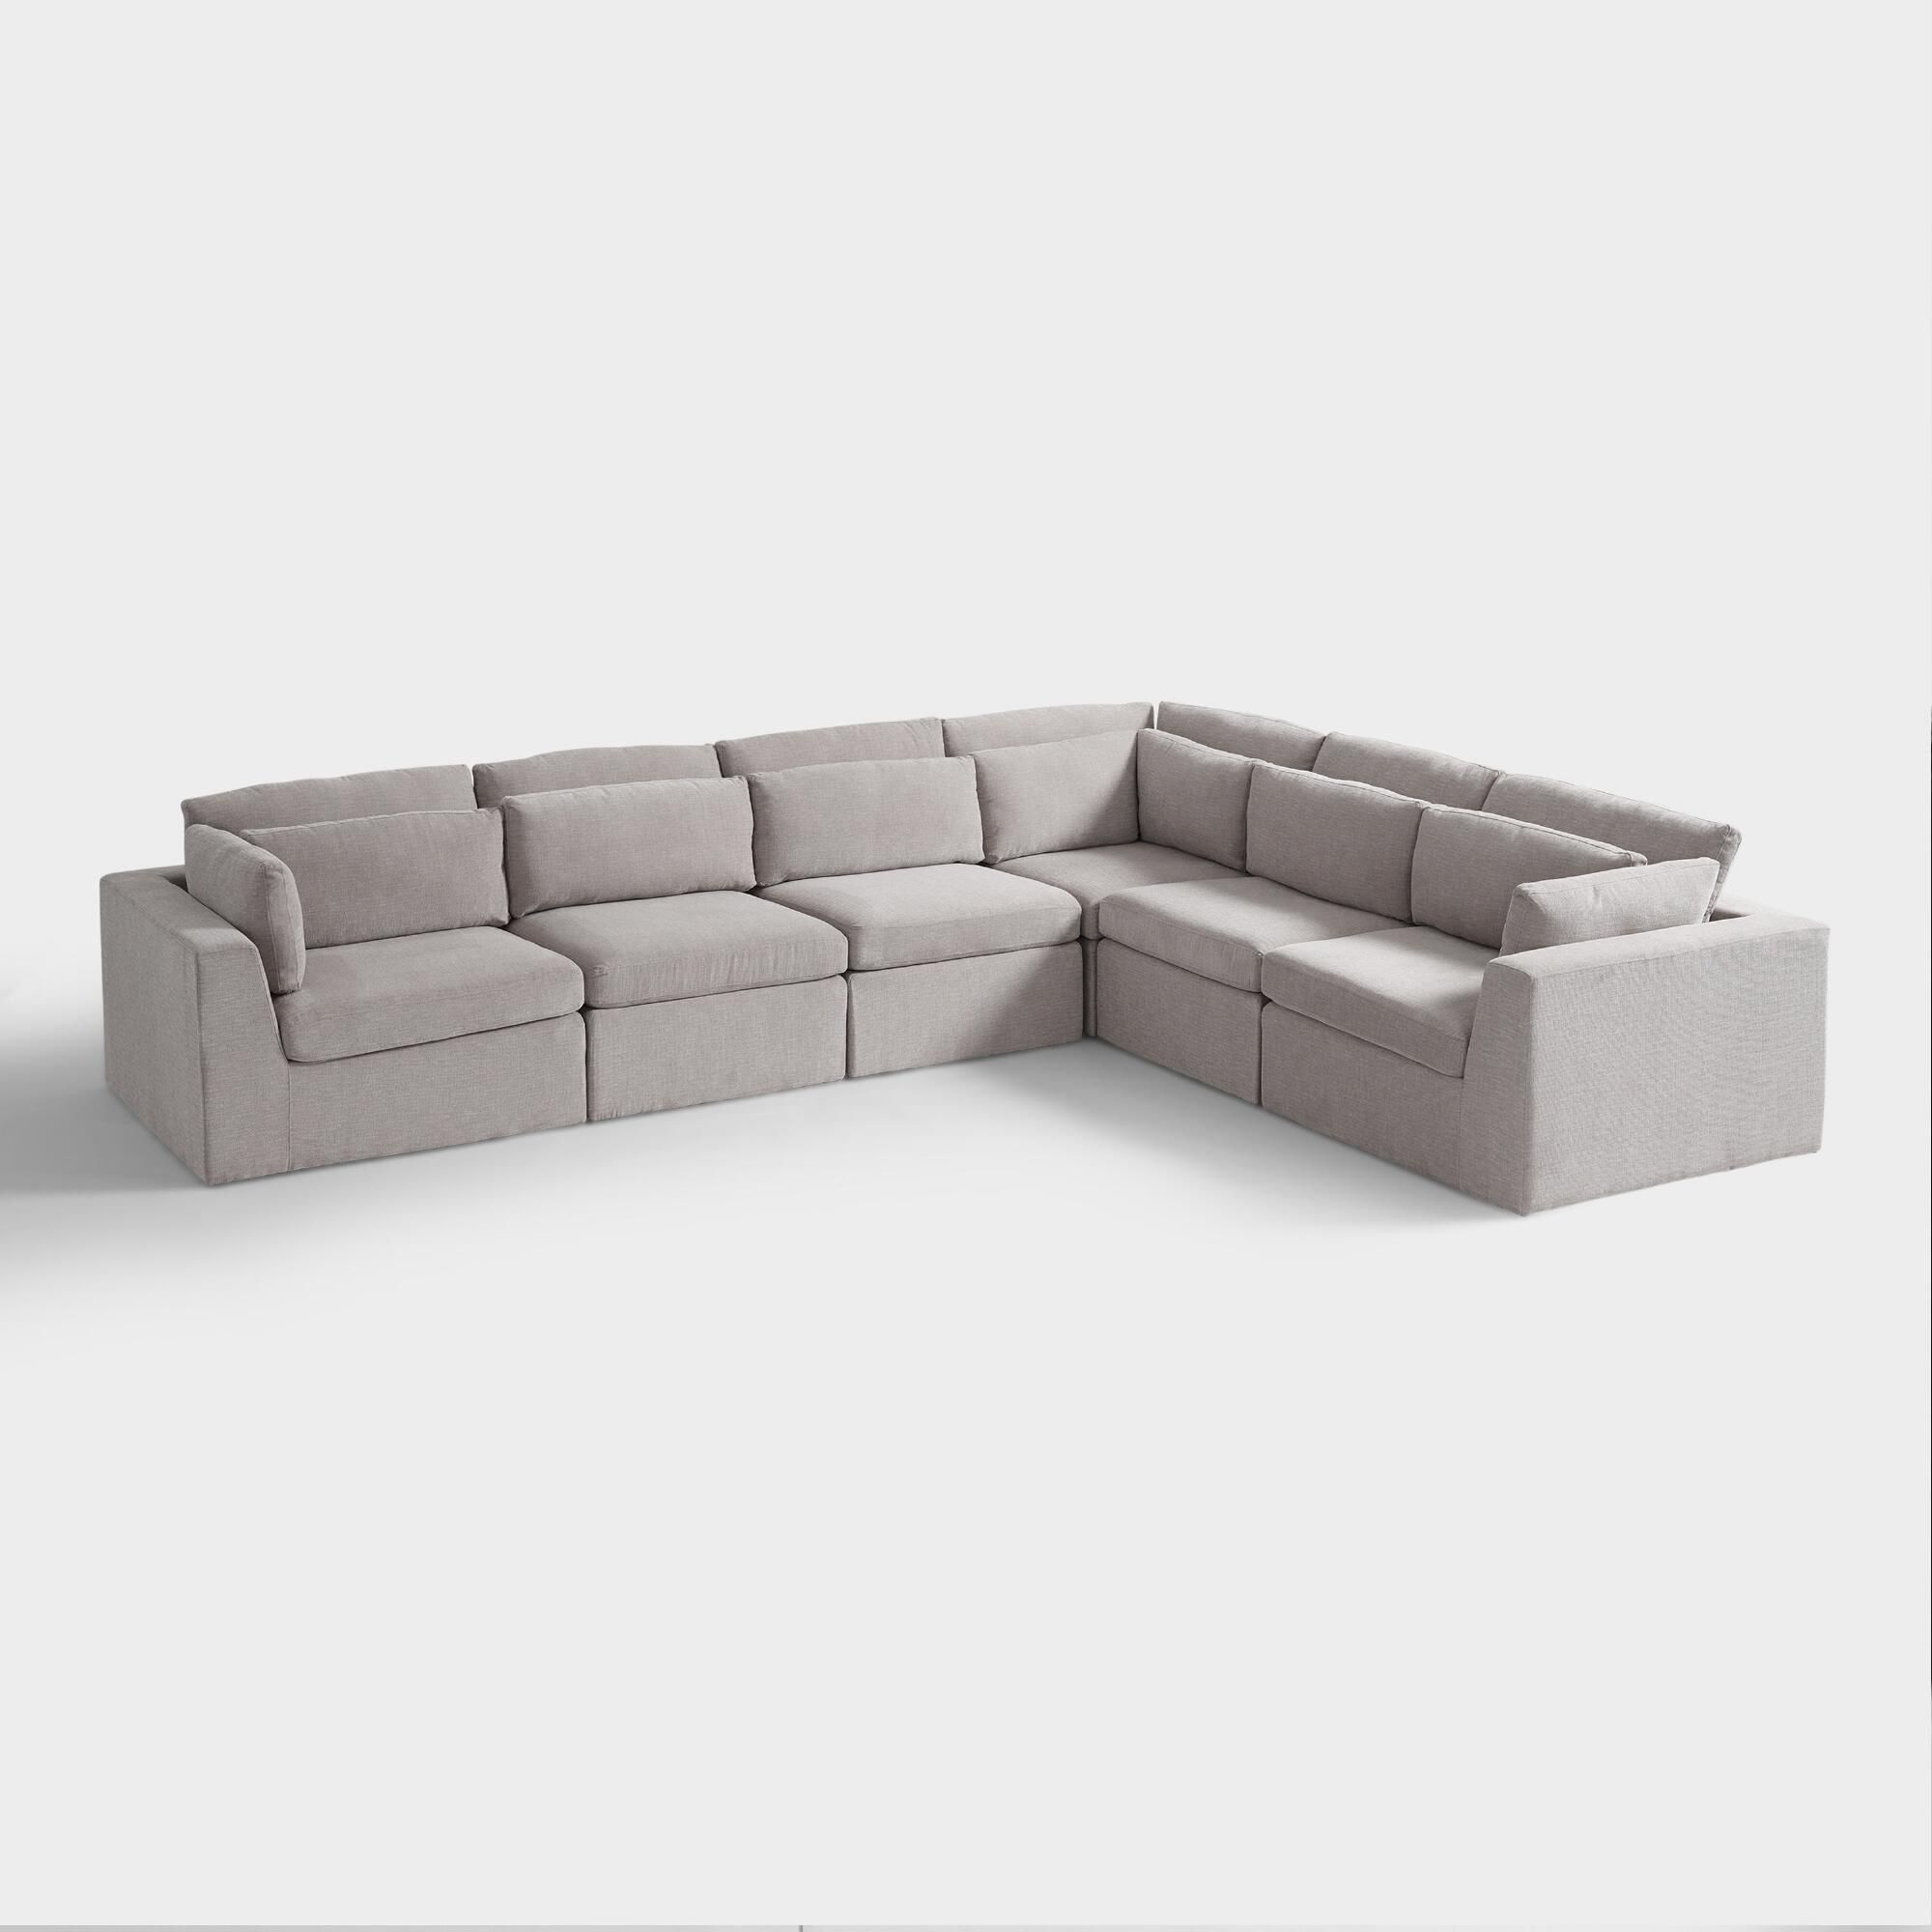 Bettsofa Florida Emmett 6 Piece Modular Section Sofa By World Market Products